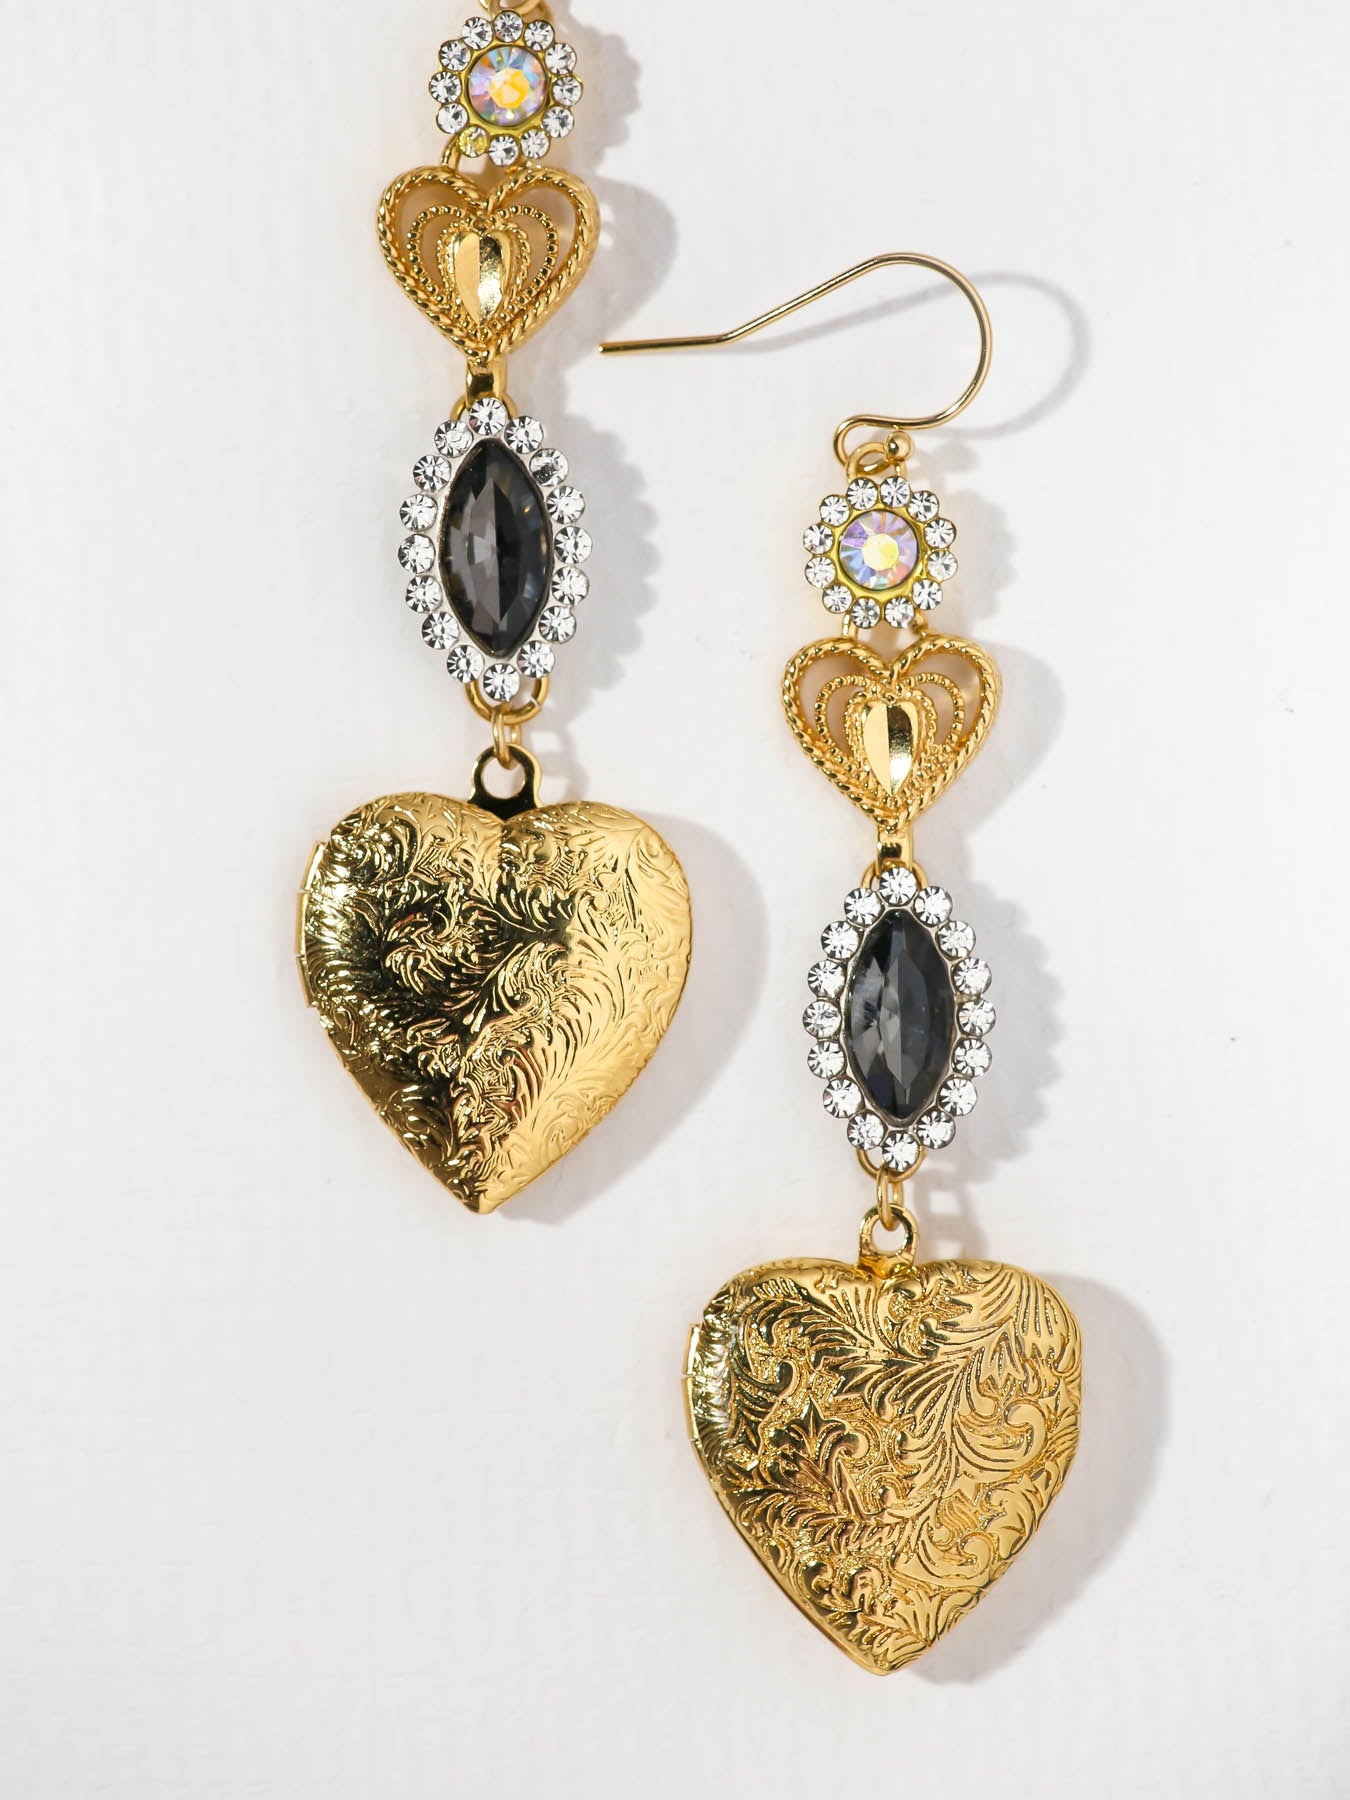 The Aaliyah Locket Earrings